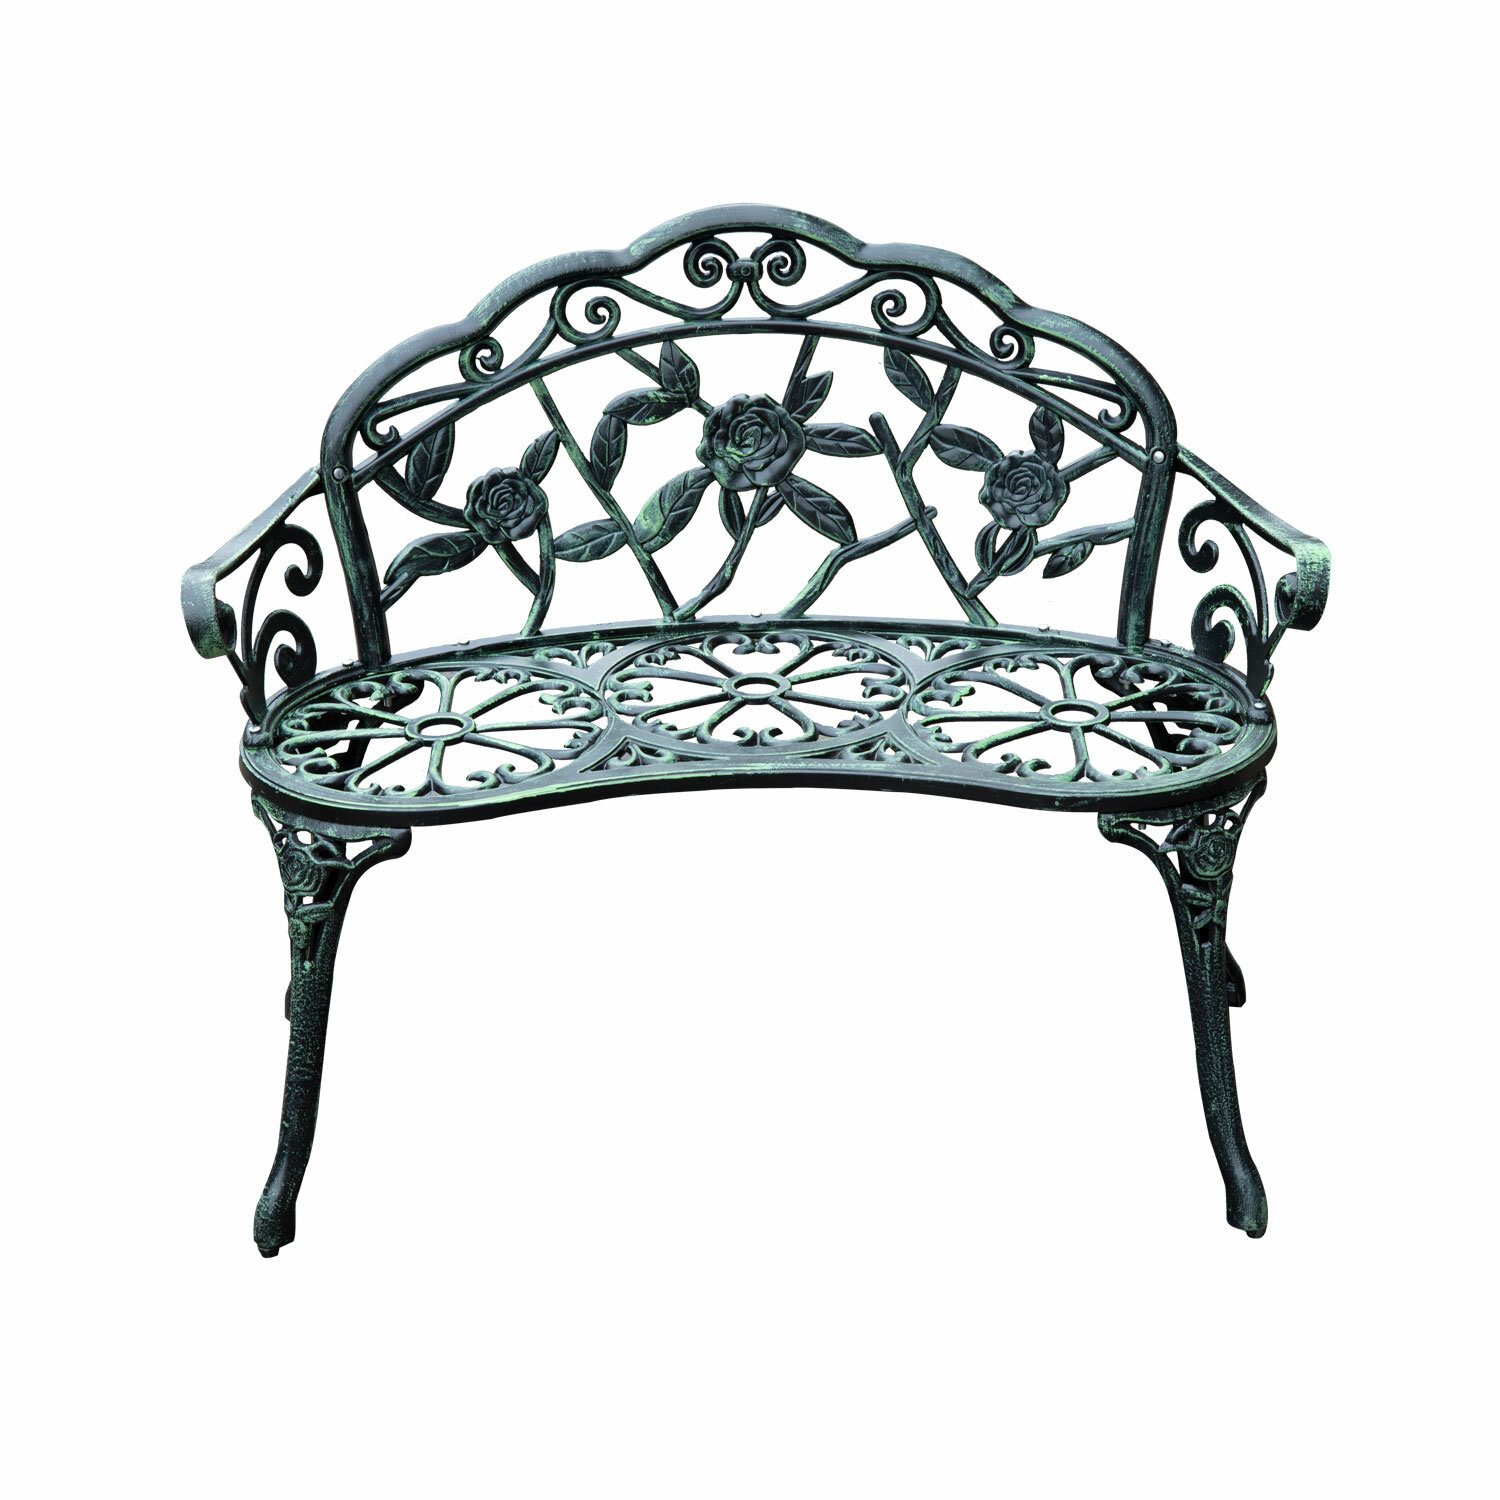 Astoria Grand Asheville Antique Outdoor Patio Metal Garden Bench U0026 Reviews  | Wayfair